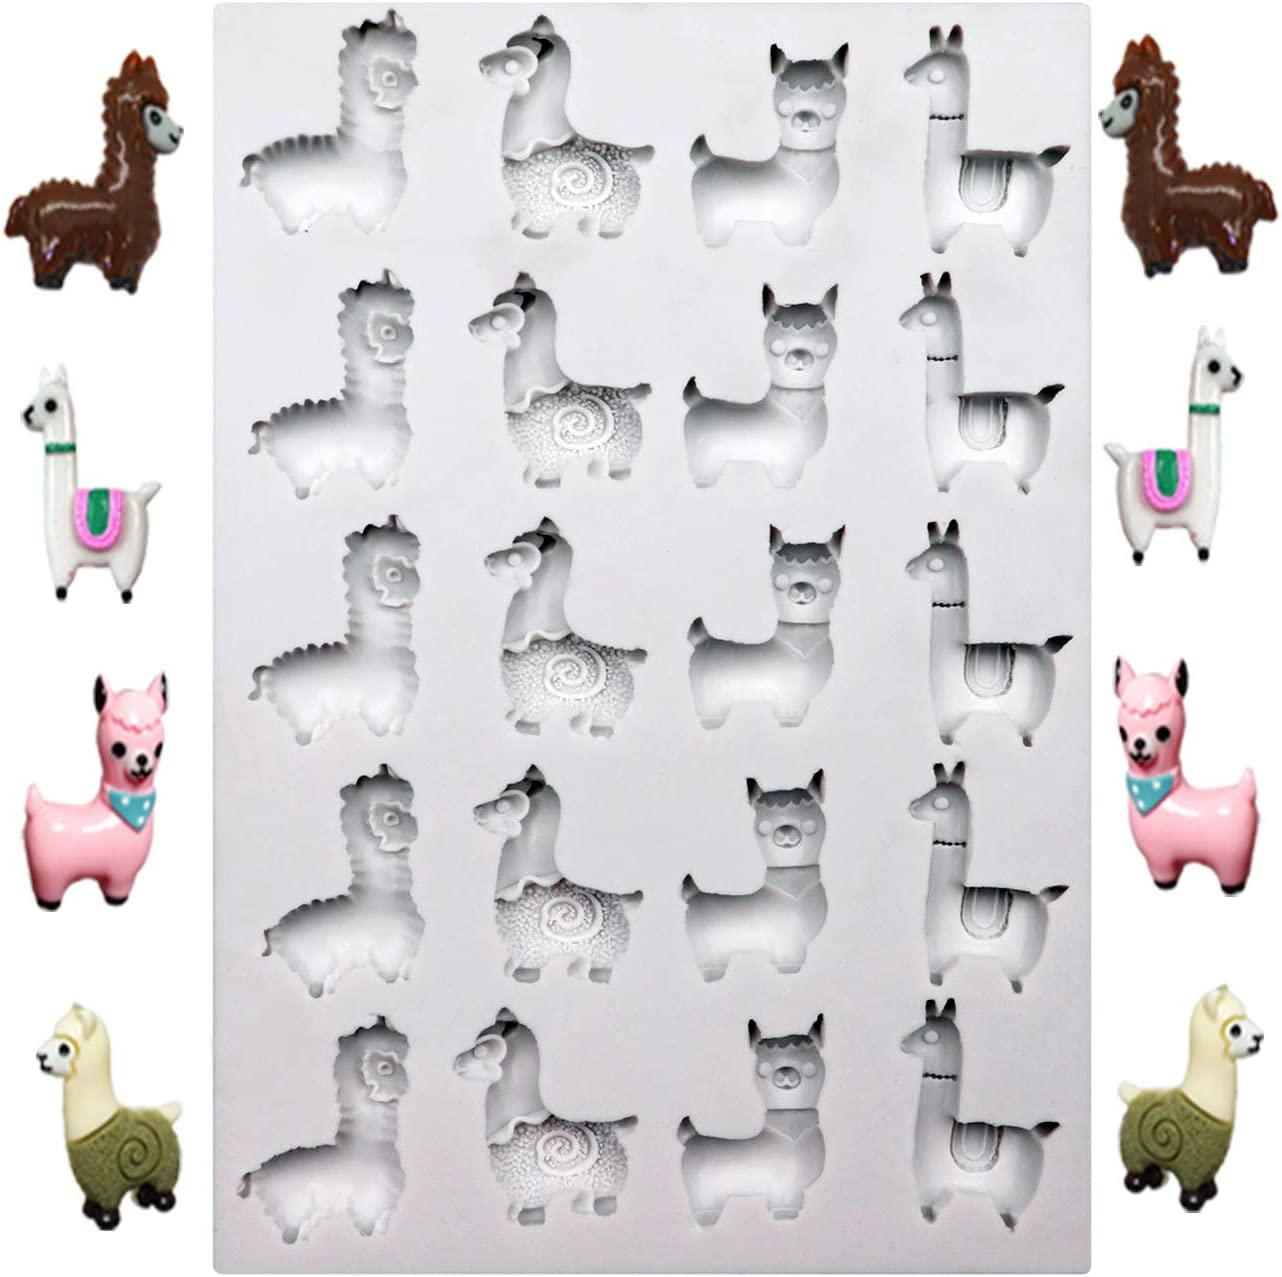 Polymer Clay Cake Pops Alpaca Fondant Mold Candy Molds for Chocolate Resin 20 Cavity Llama Silicone Molds